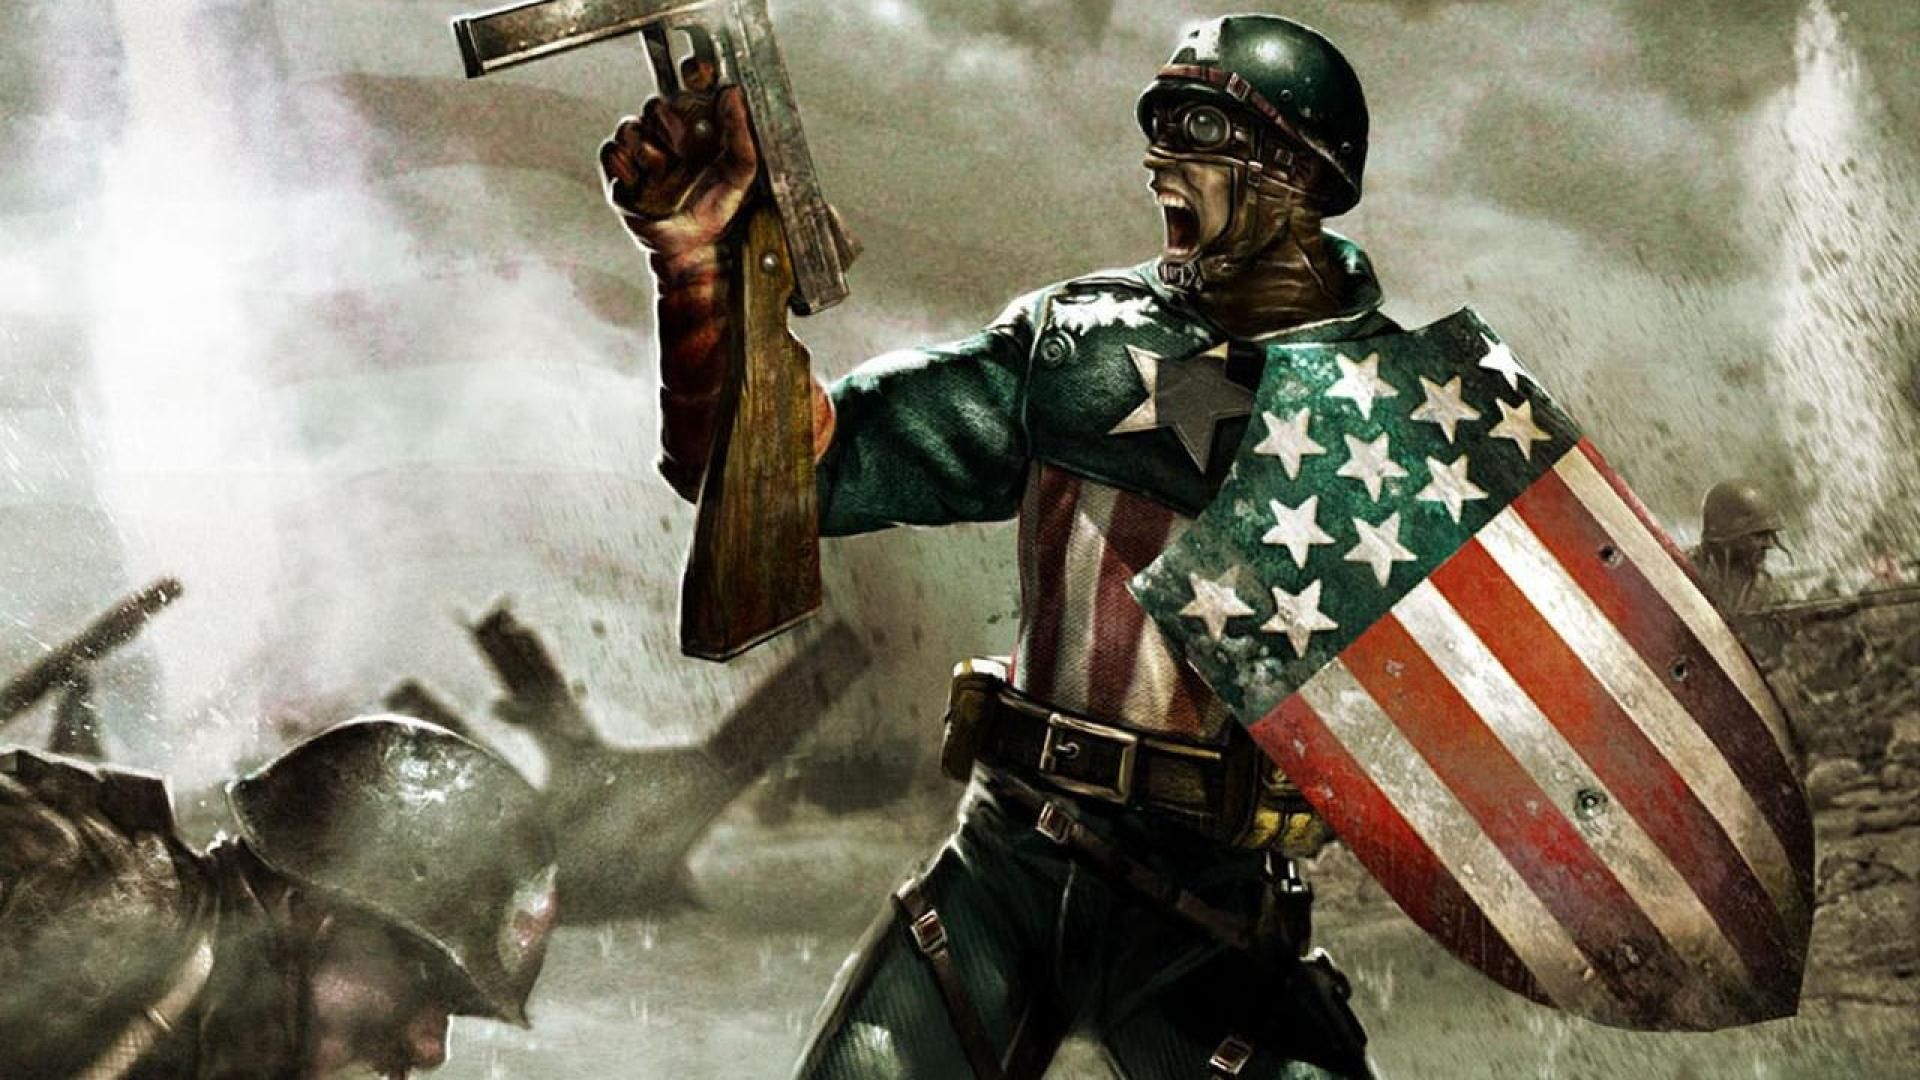 Ww2 Captain America Wallpapers Top Free Ww2 Captain